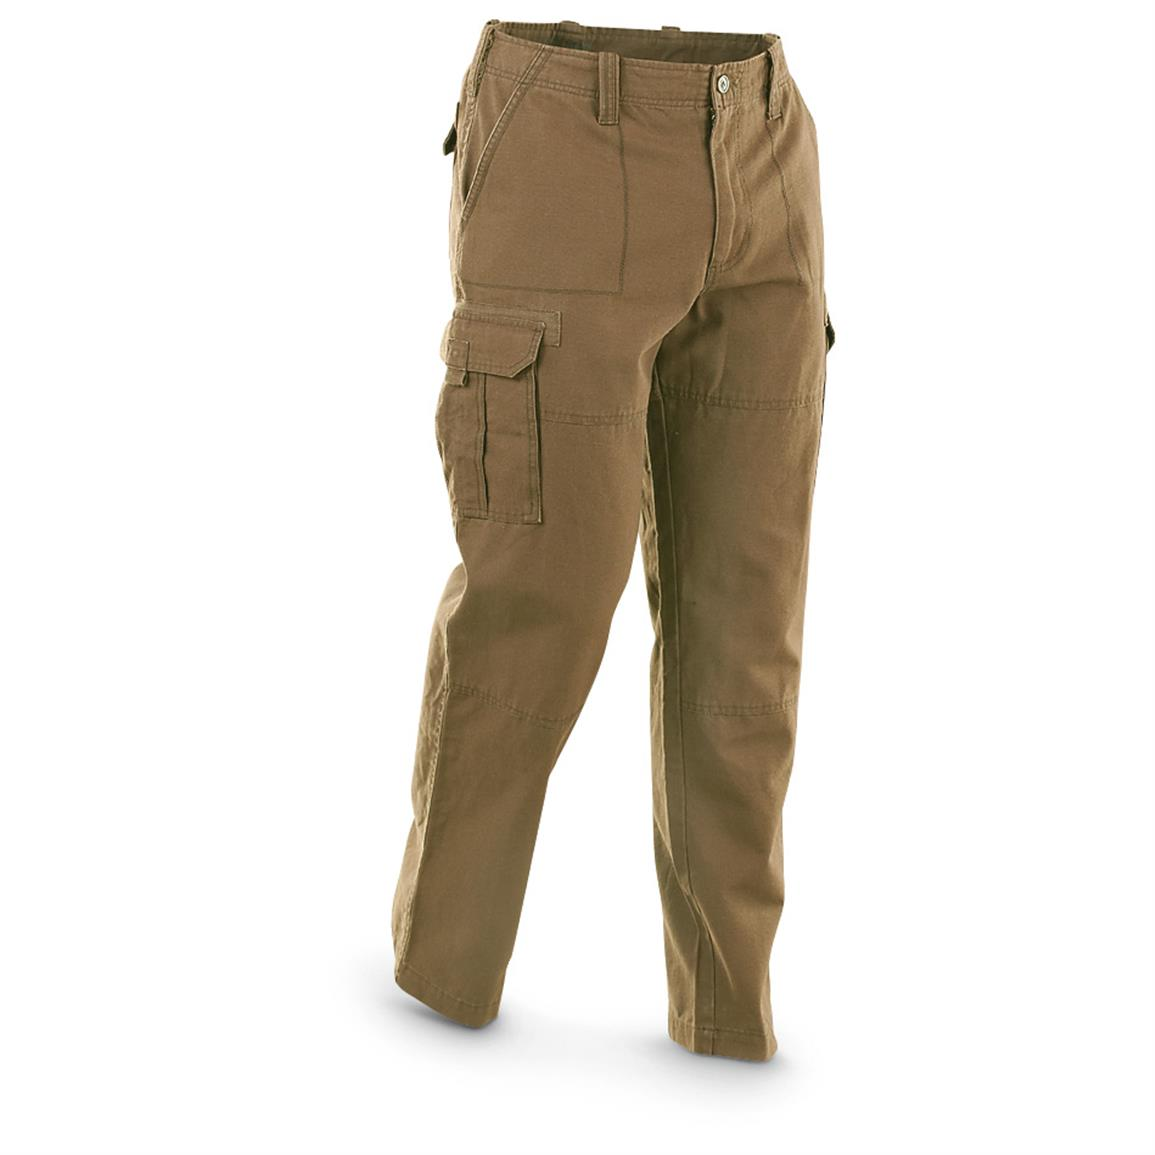 Guide Gear Men's Cargo Pants, British Khaki